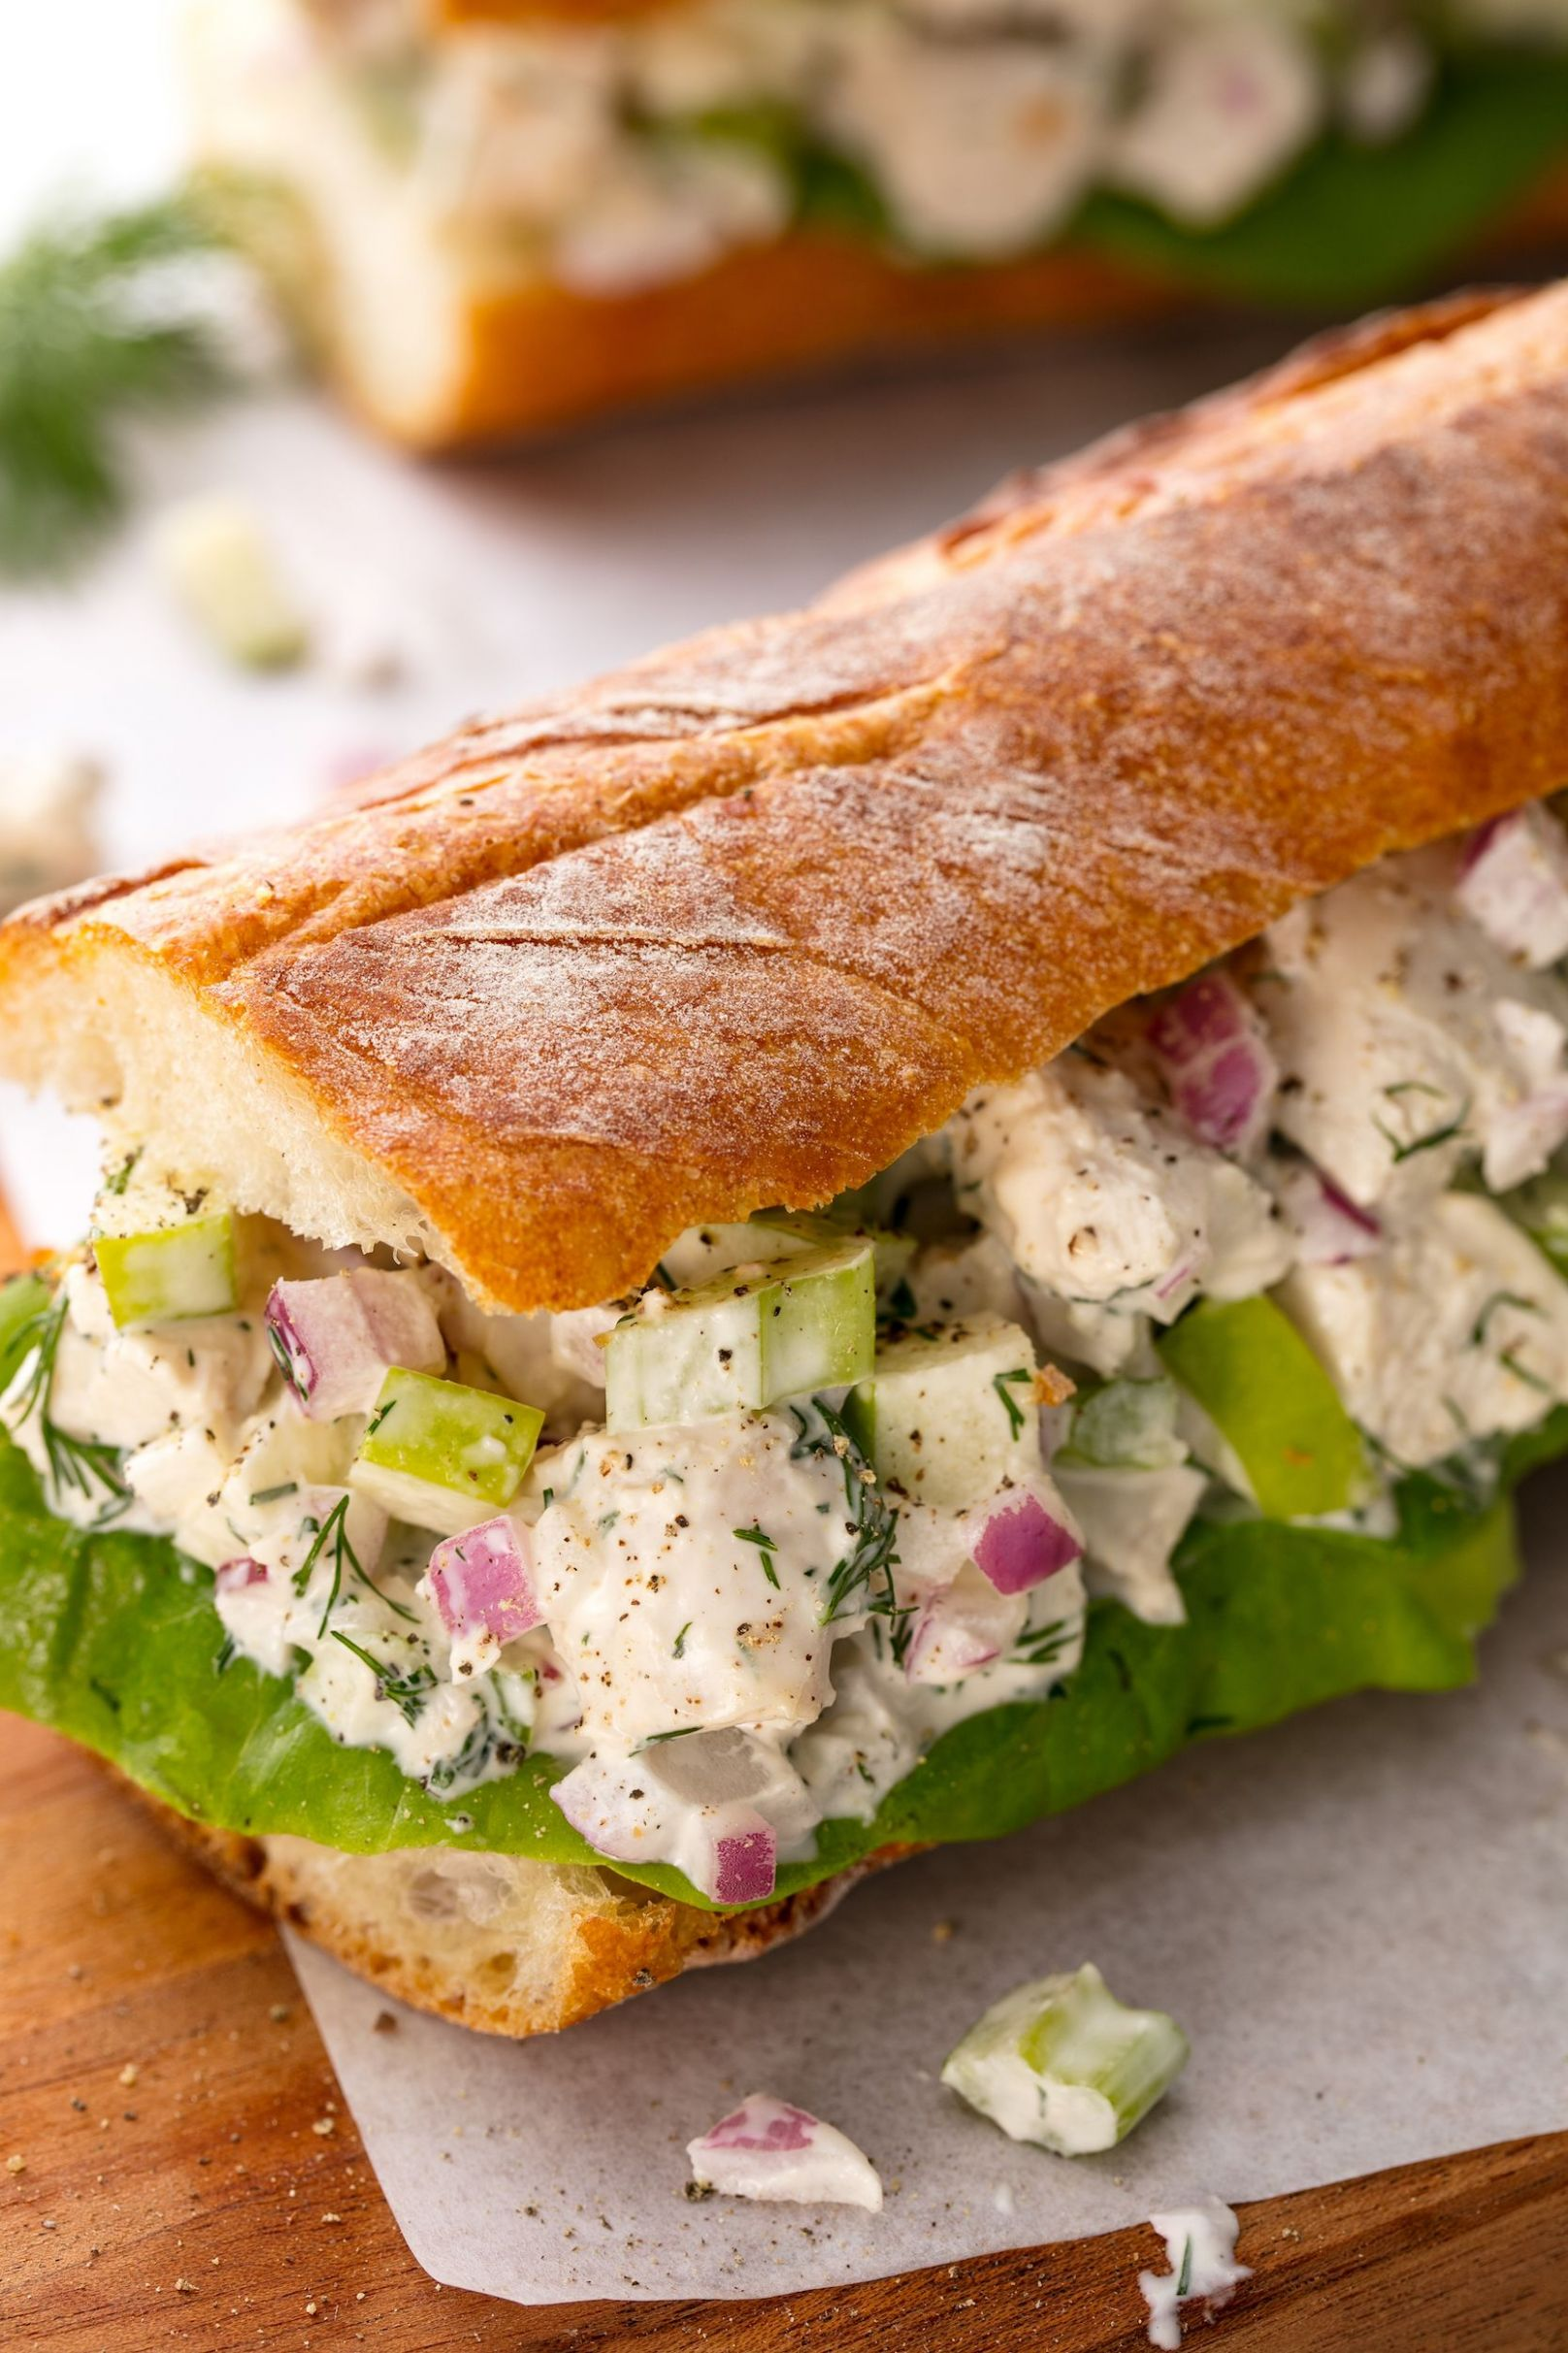 10+ Easy Sandwich Recipes for Lunch - Easy Lunch Sandwiches - Sandwich Recipes To Go